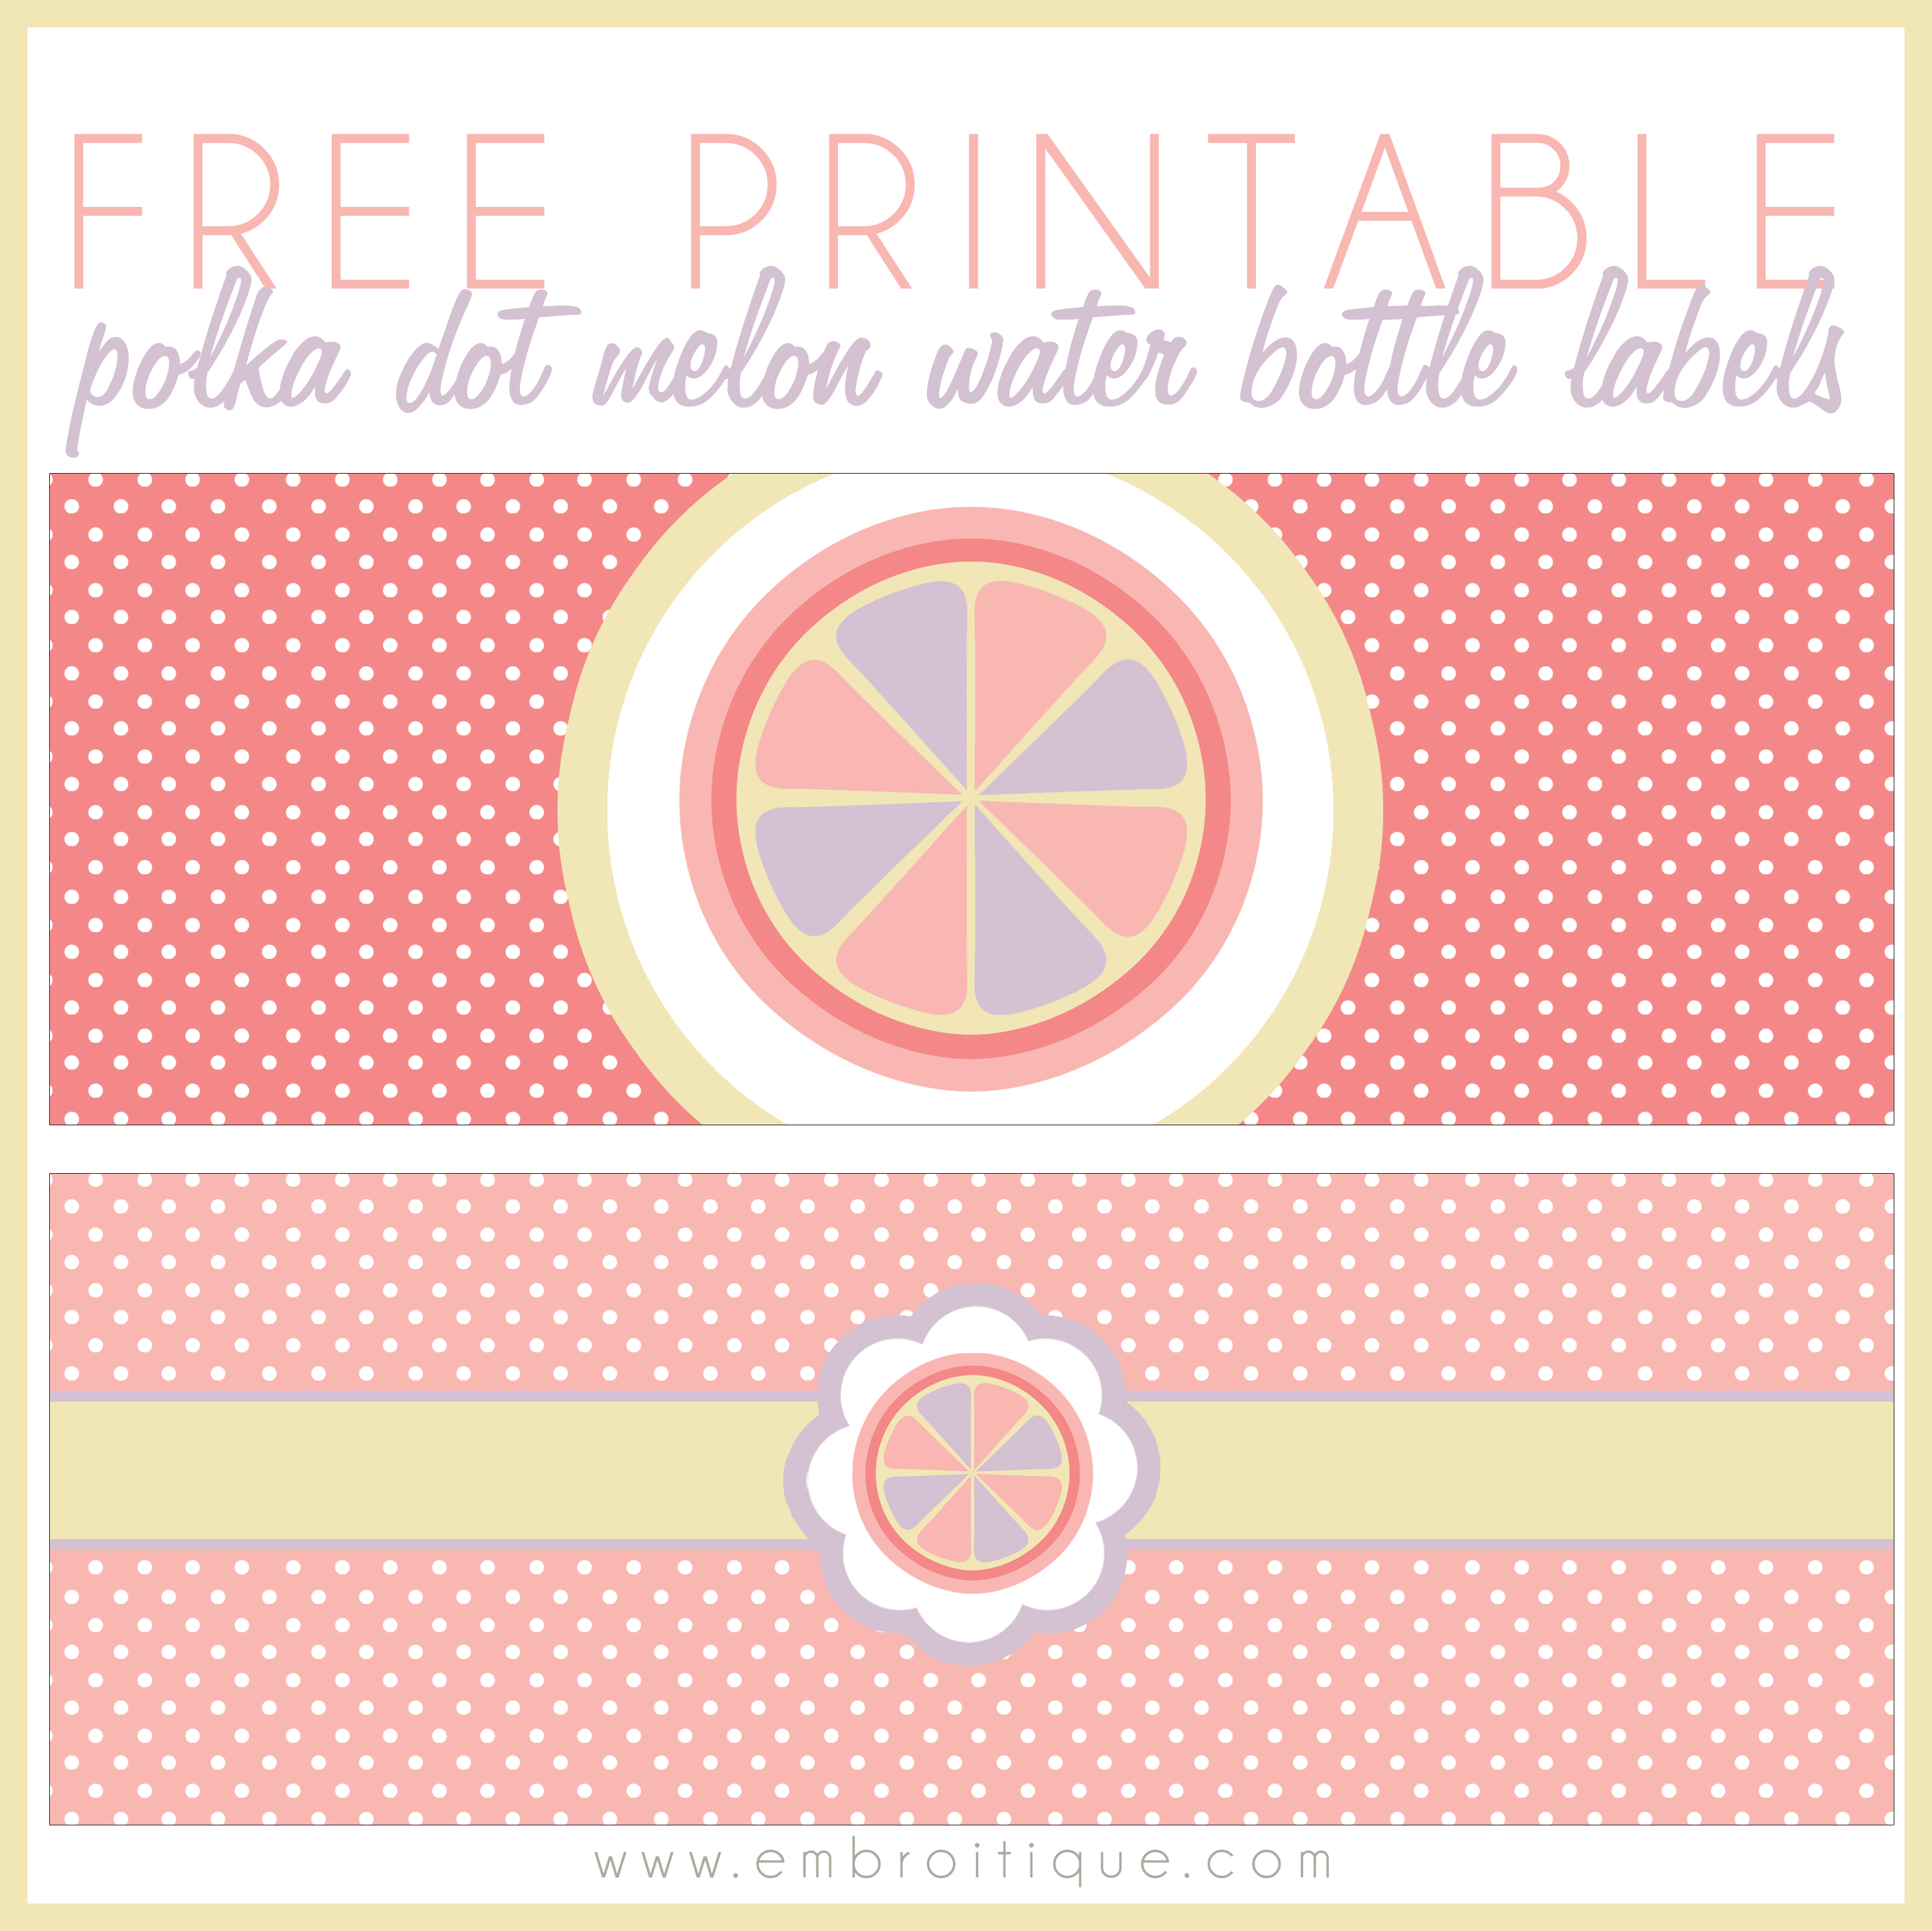 7 Best Images of Free Printable Bottle Labels - Free ...